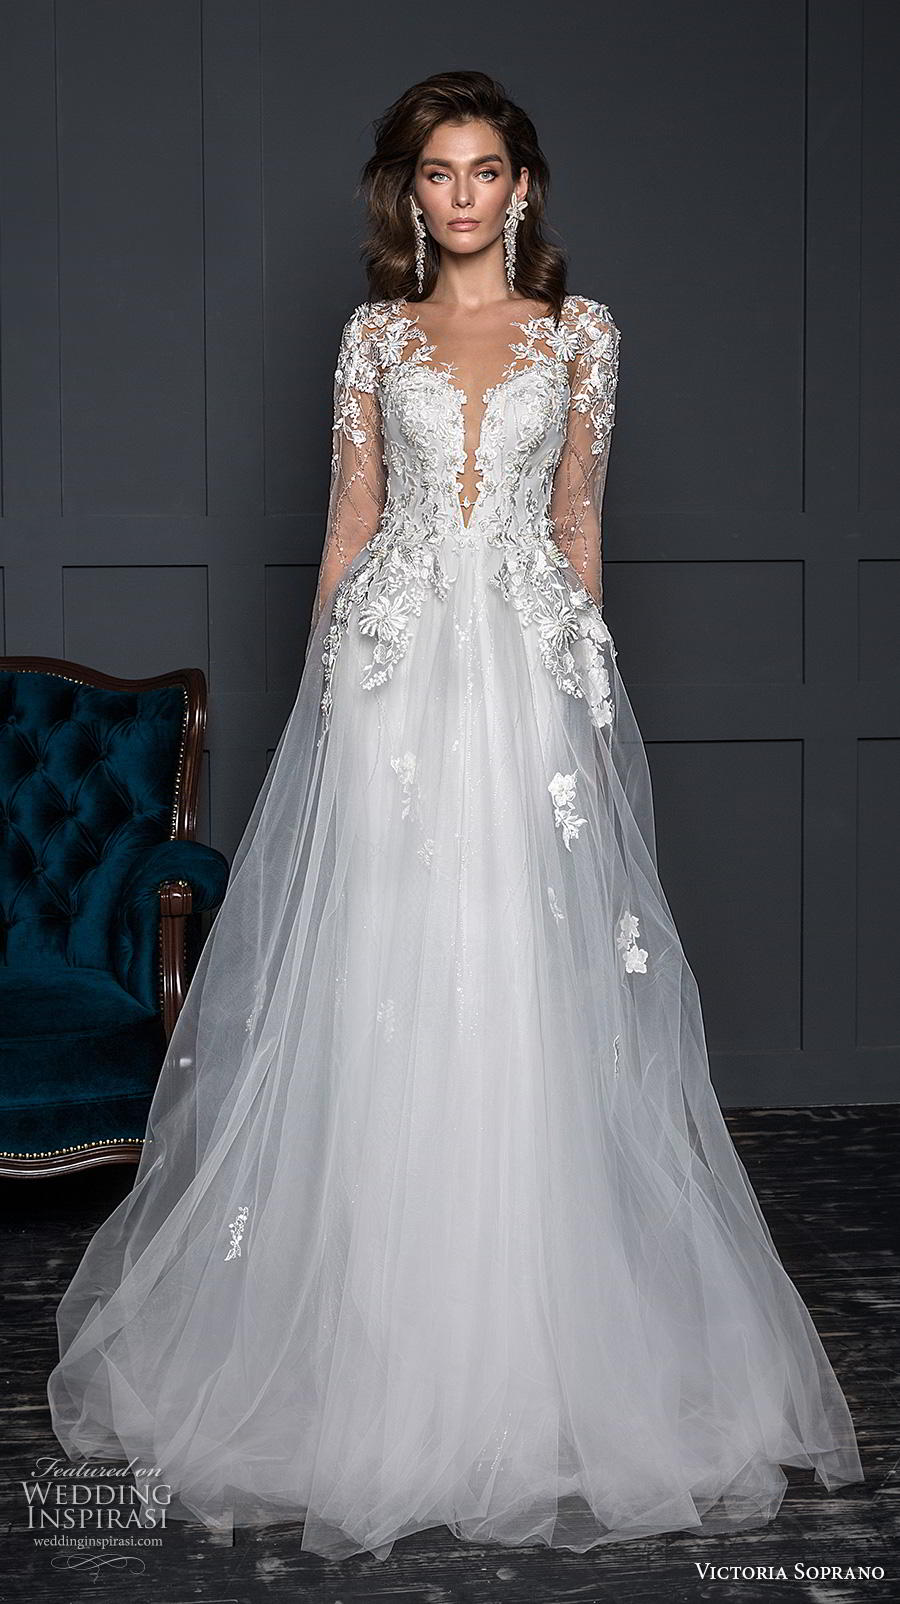 victoria soprano 2020 bridal long sleeves deep plunging sweetheart neckline heavily embellished bodice romantic elegant a line wedding dress sheer button back sweep train (11) mv